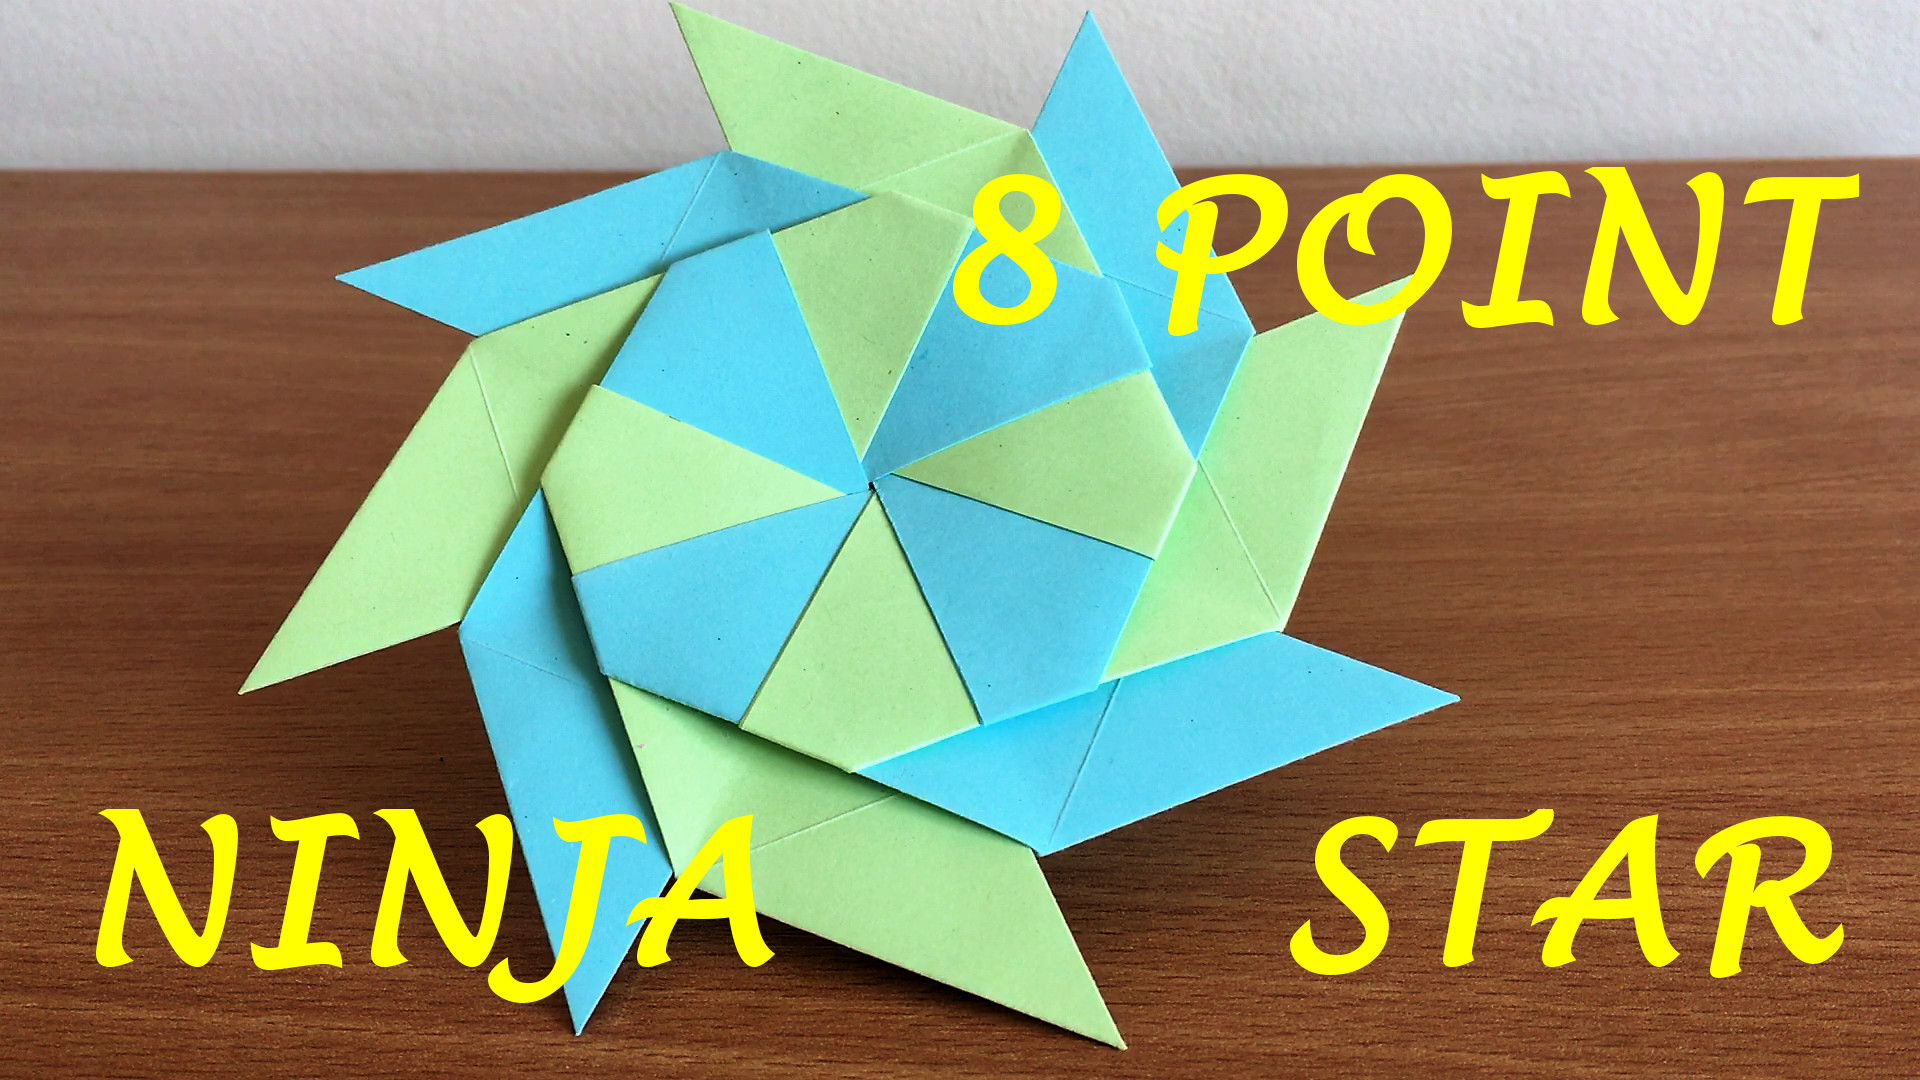 How To Make A Transforming Ninja Star (8-Pointed) – Dr. Hacker